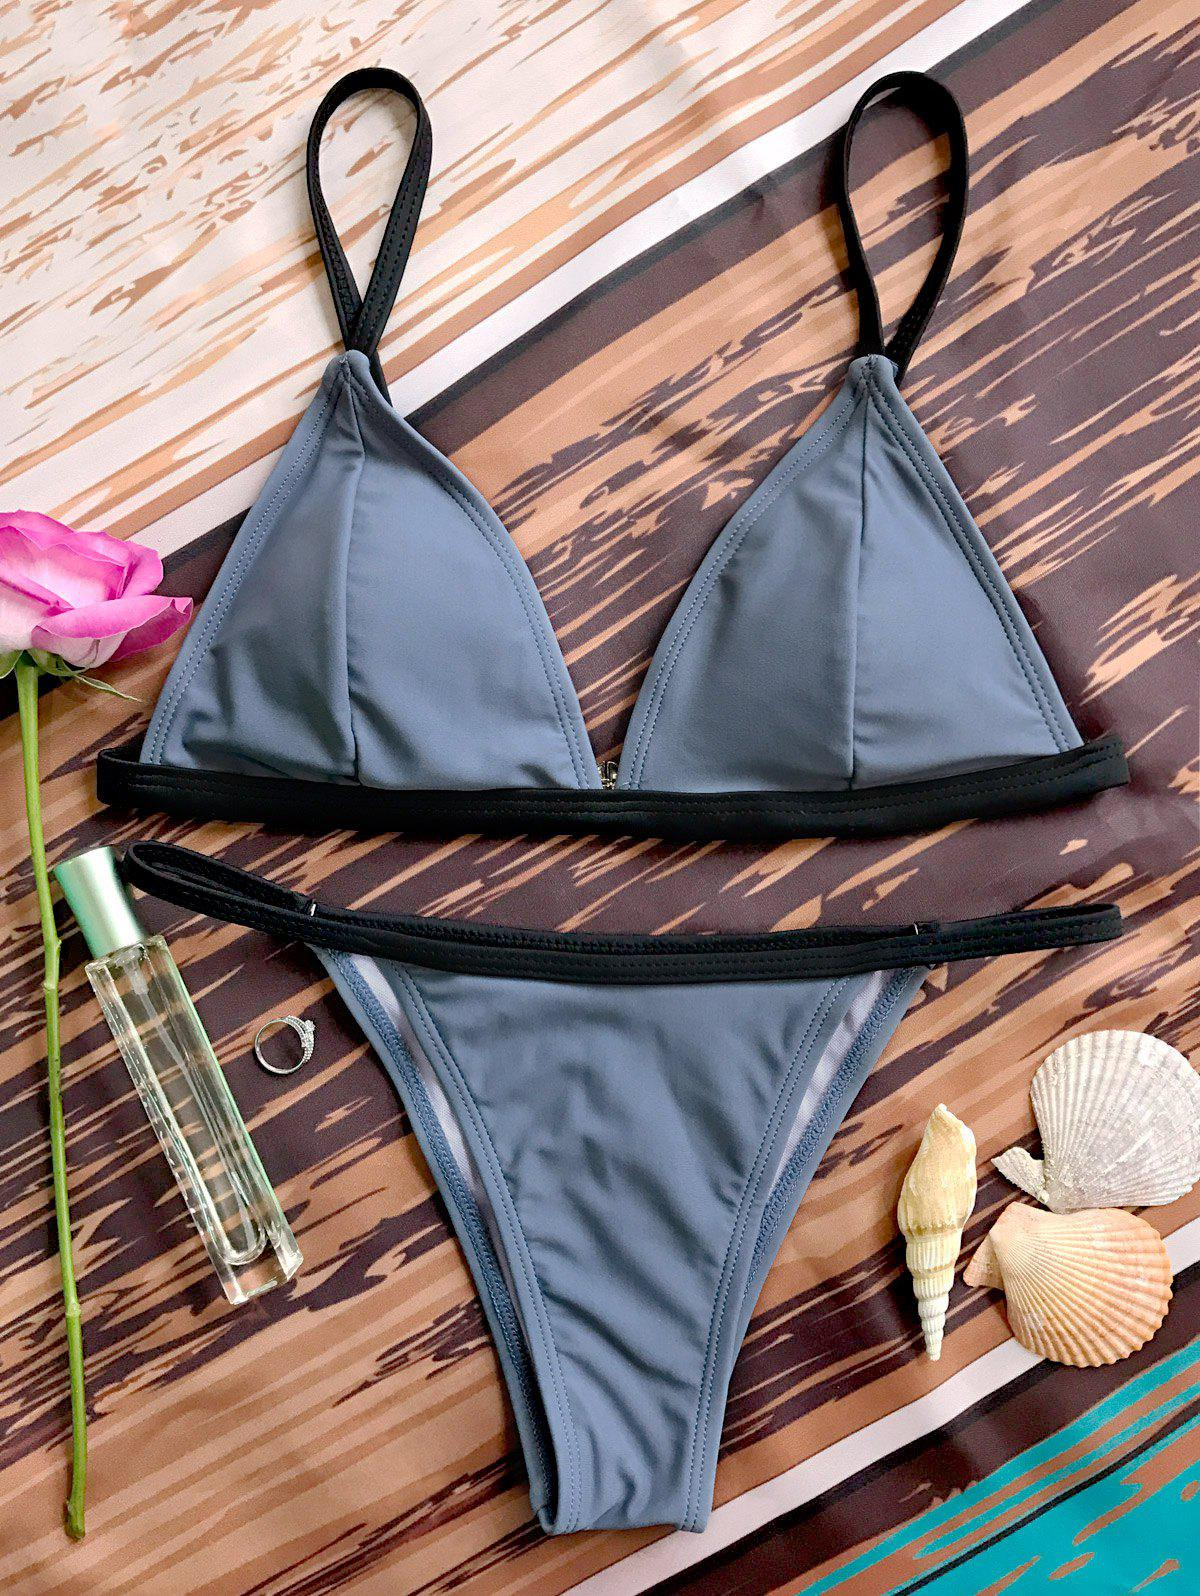 Bicolor Plunge V String BikiniWOMEN<br><br>Size: S; Color: GRAY; Swimwear Type: Bikini; Bikini Type: String Bikini; Gender: For Women; Material: Nylon,Polyester,Spandex; Bra Style: Padded; Support Type: Wire Free; Neckline: Straps; Pattern Type: Others; Waist: Low Waisted; Elasticity: Elastic; Weight: 0.2000kg; Package Contents: 1 x Top  1 x Briefs;